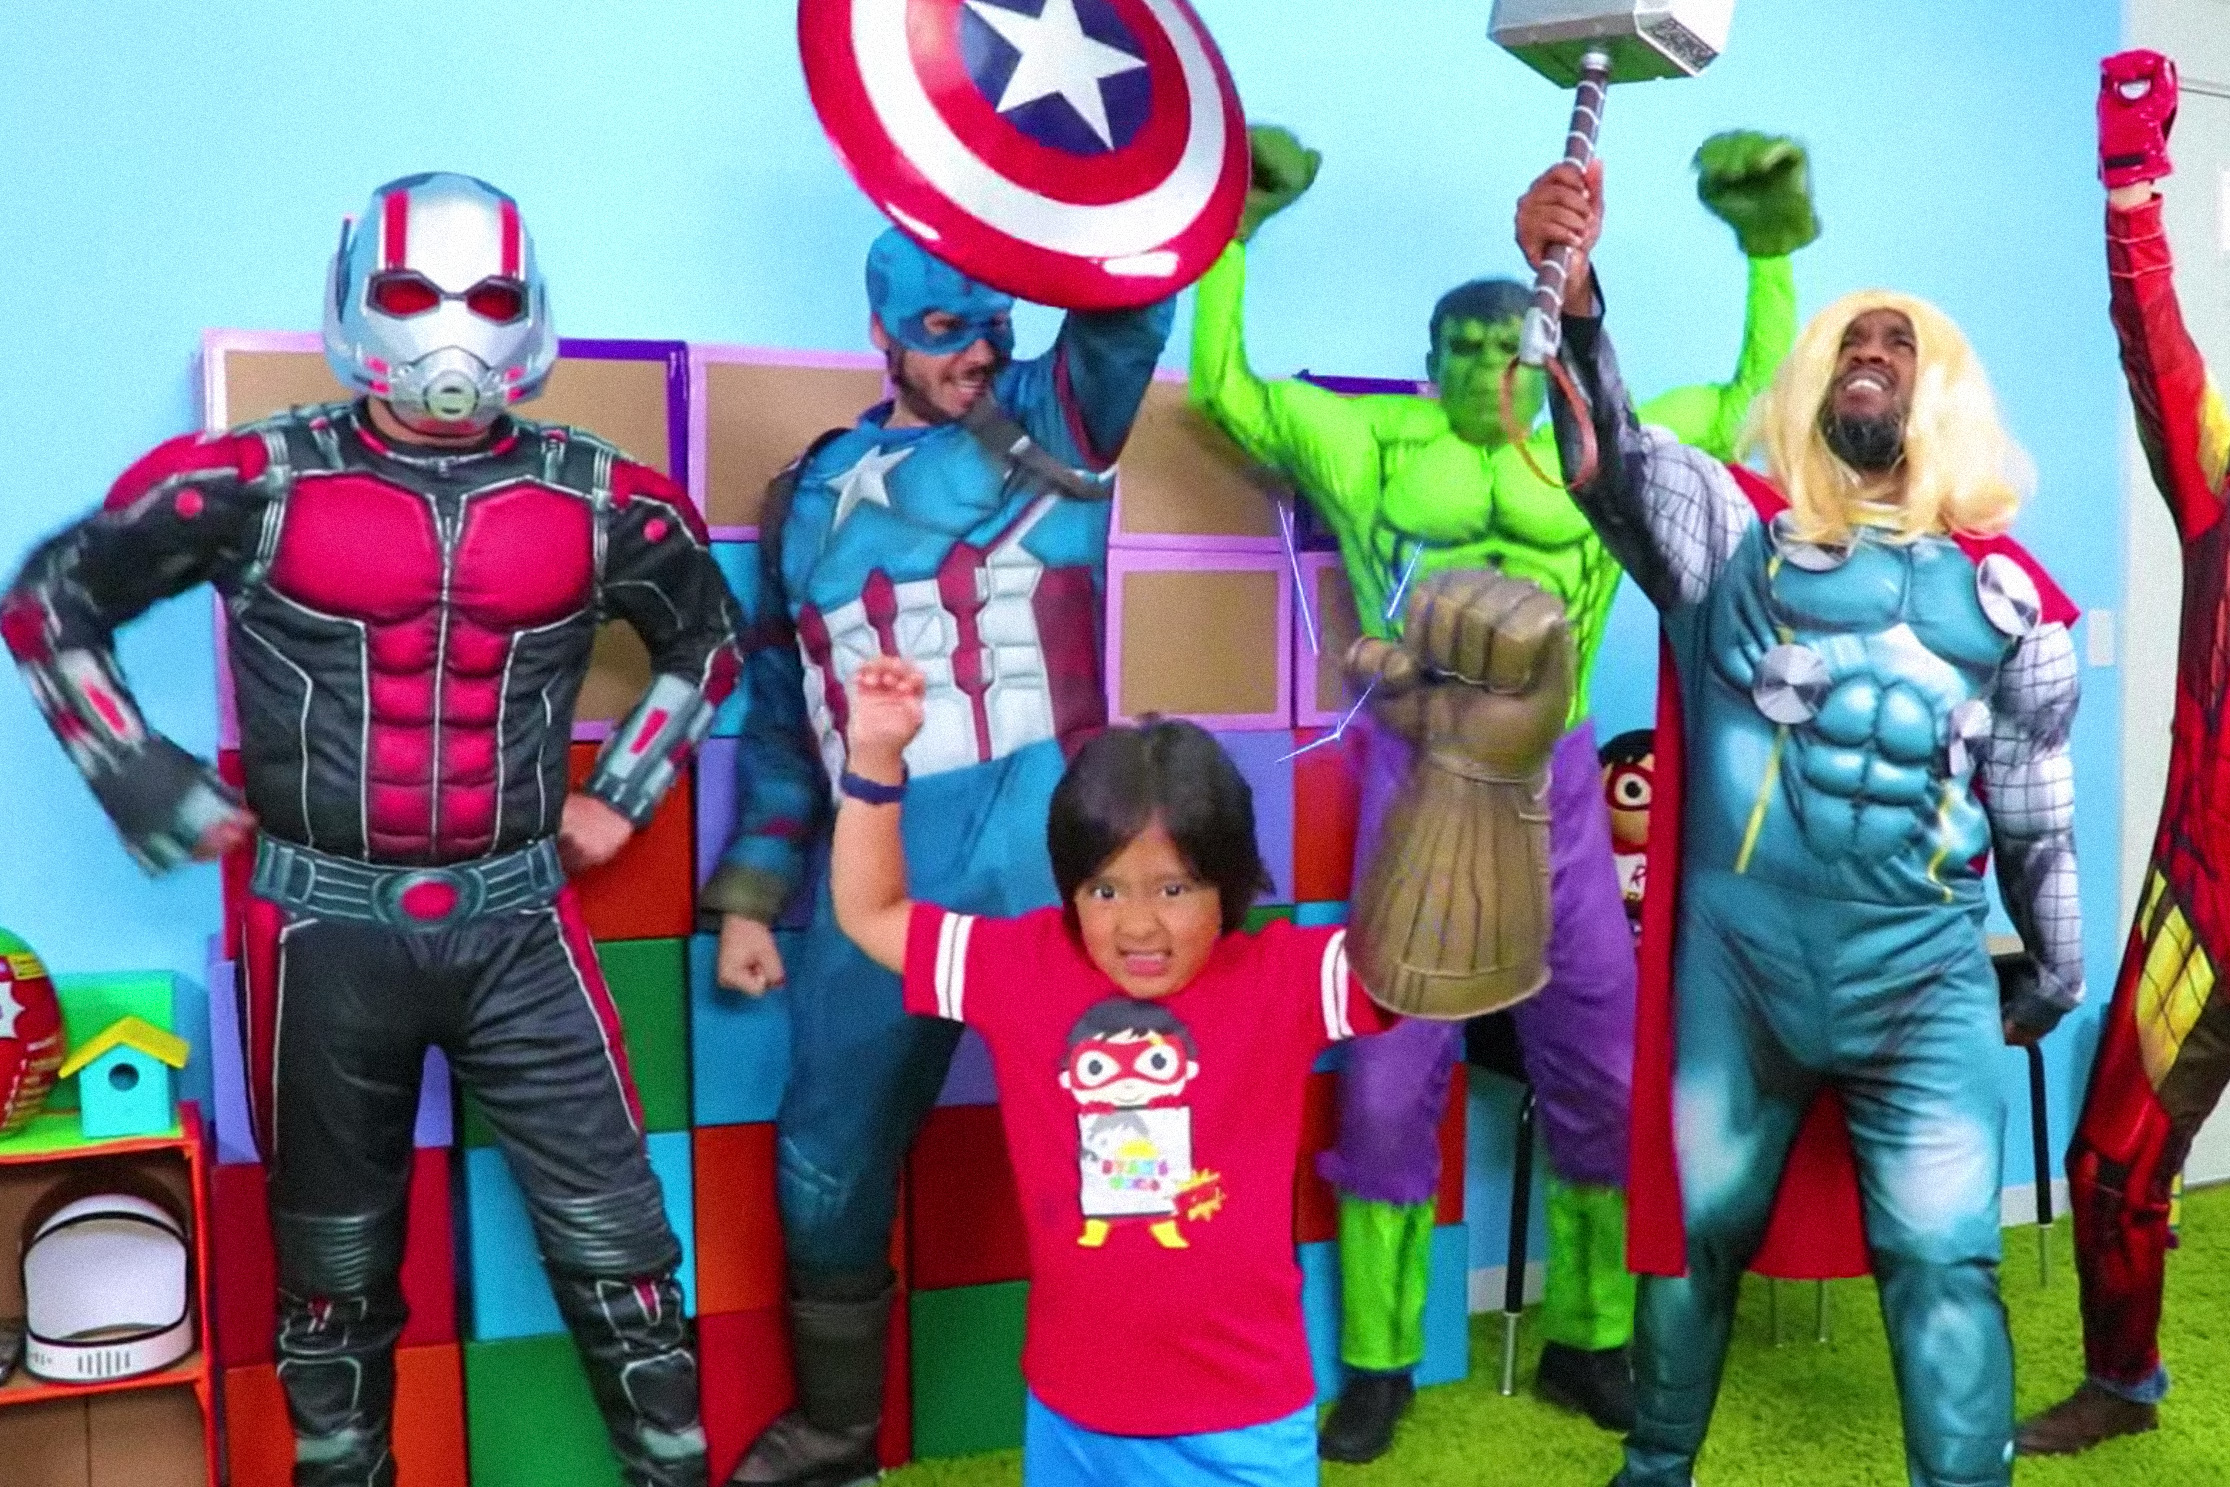 Popular YouTube toy reviewer who's just a kid under scrutiny for 'deceptive advertising'